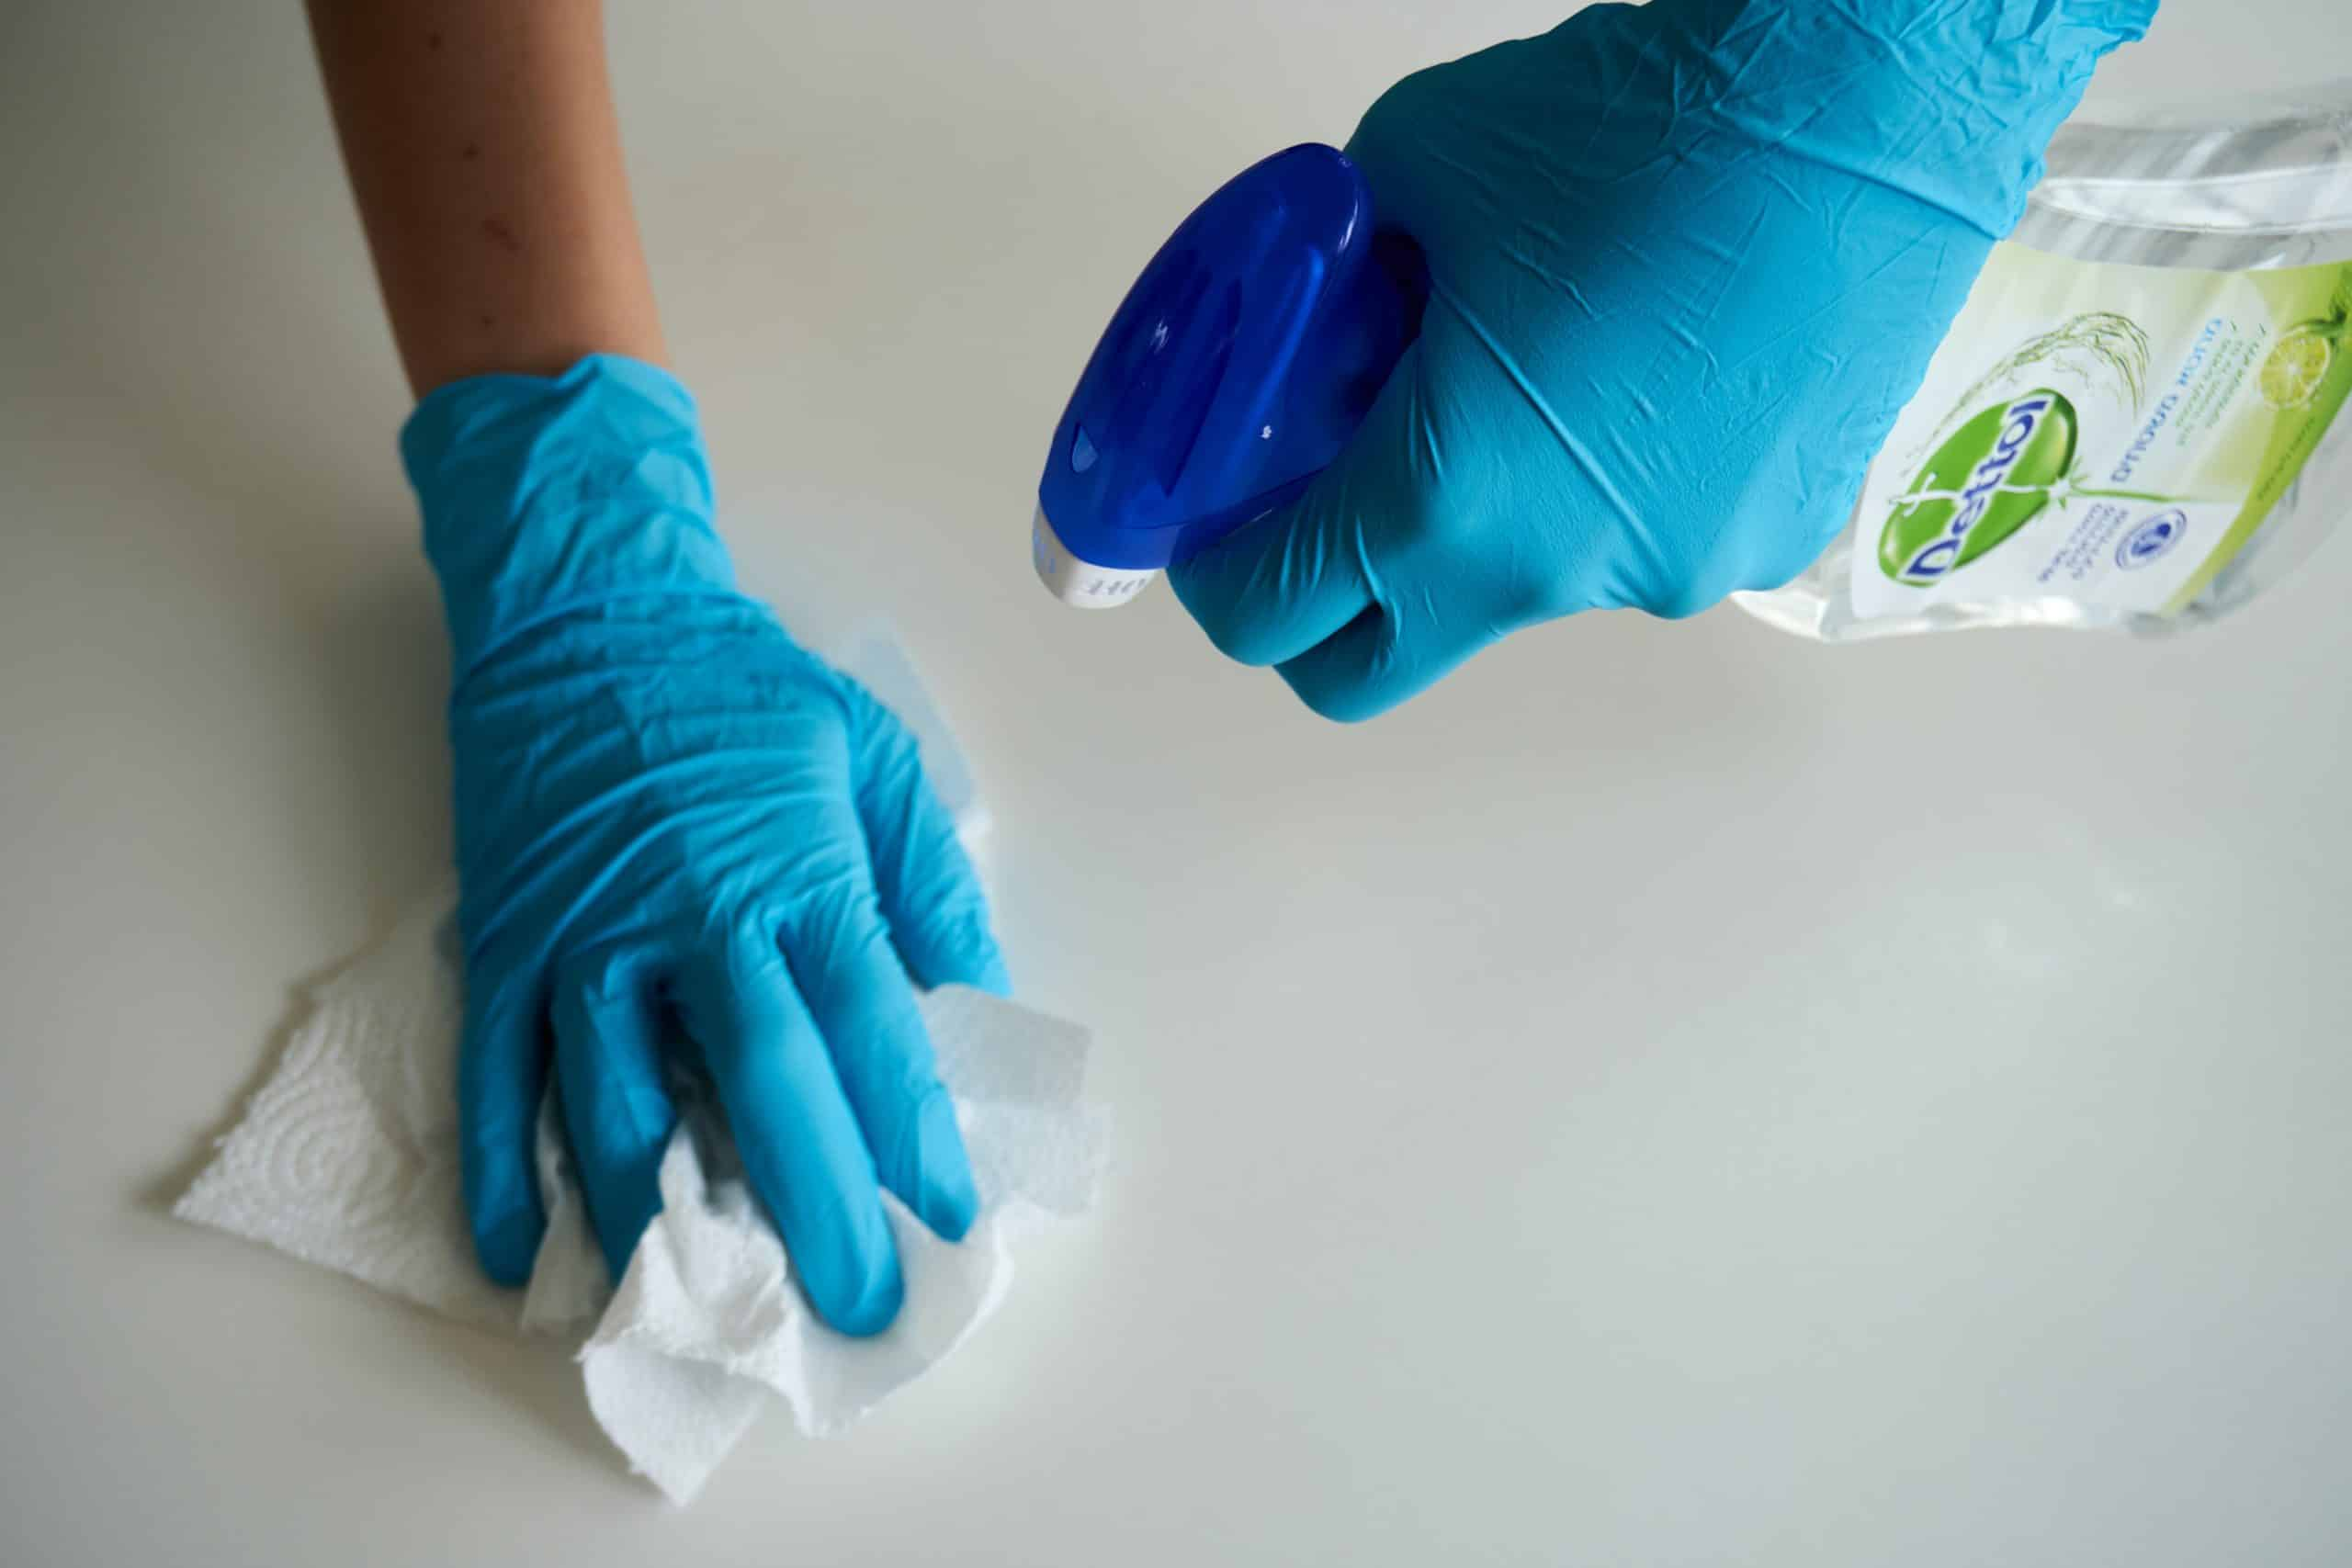 Disinfecting surface with antibacterial spray